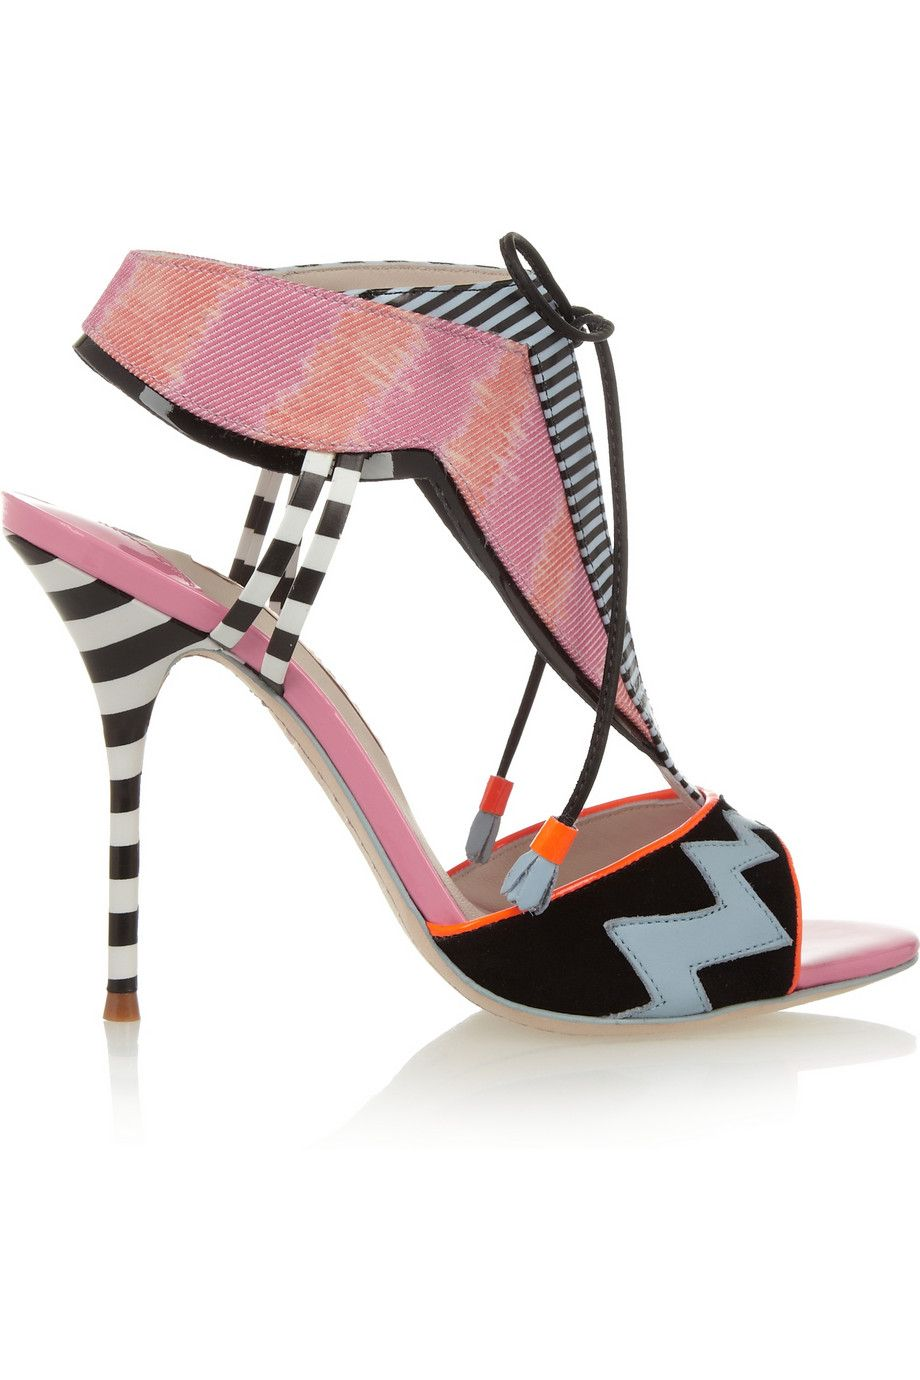 5b6a0780f910 Energize your footwear collection with Sophia Webster s graphic canvas and  suede sandals in zingy ...